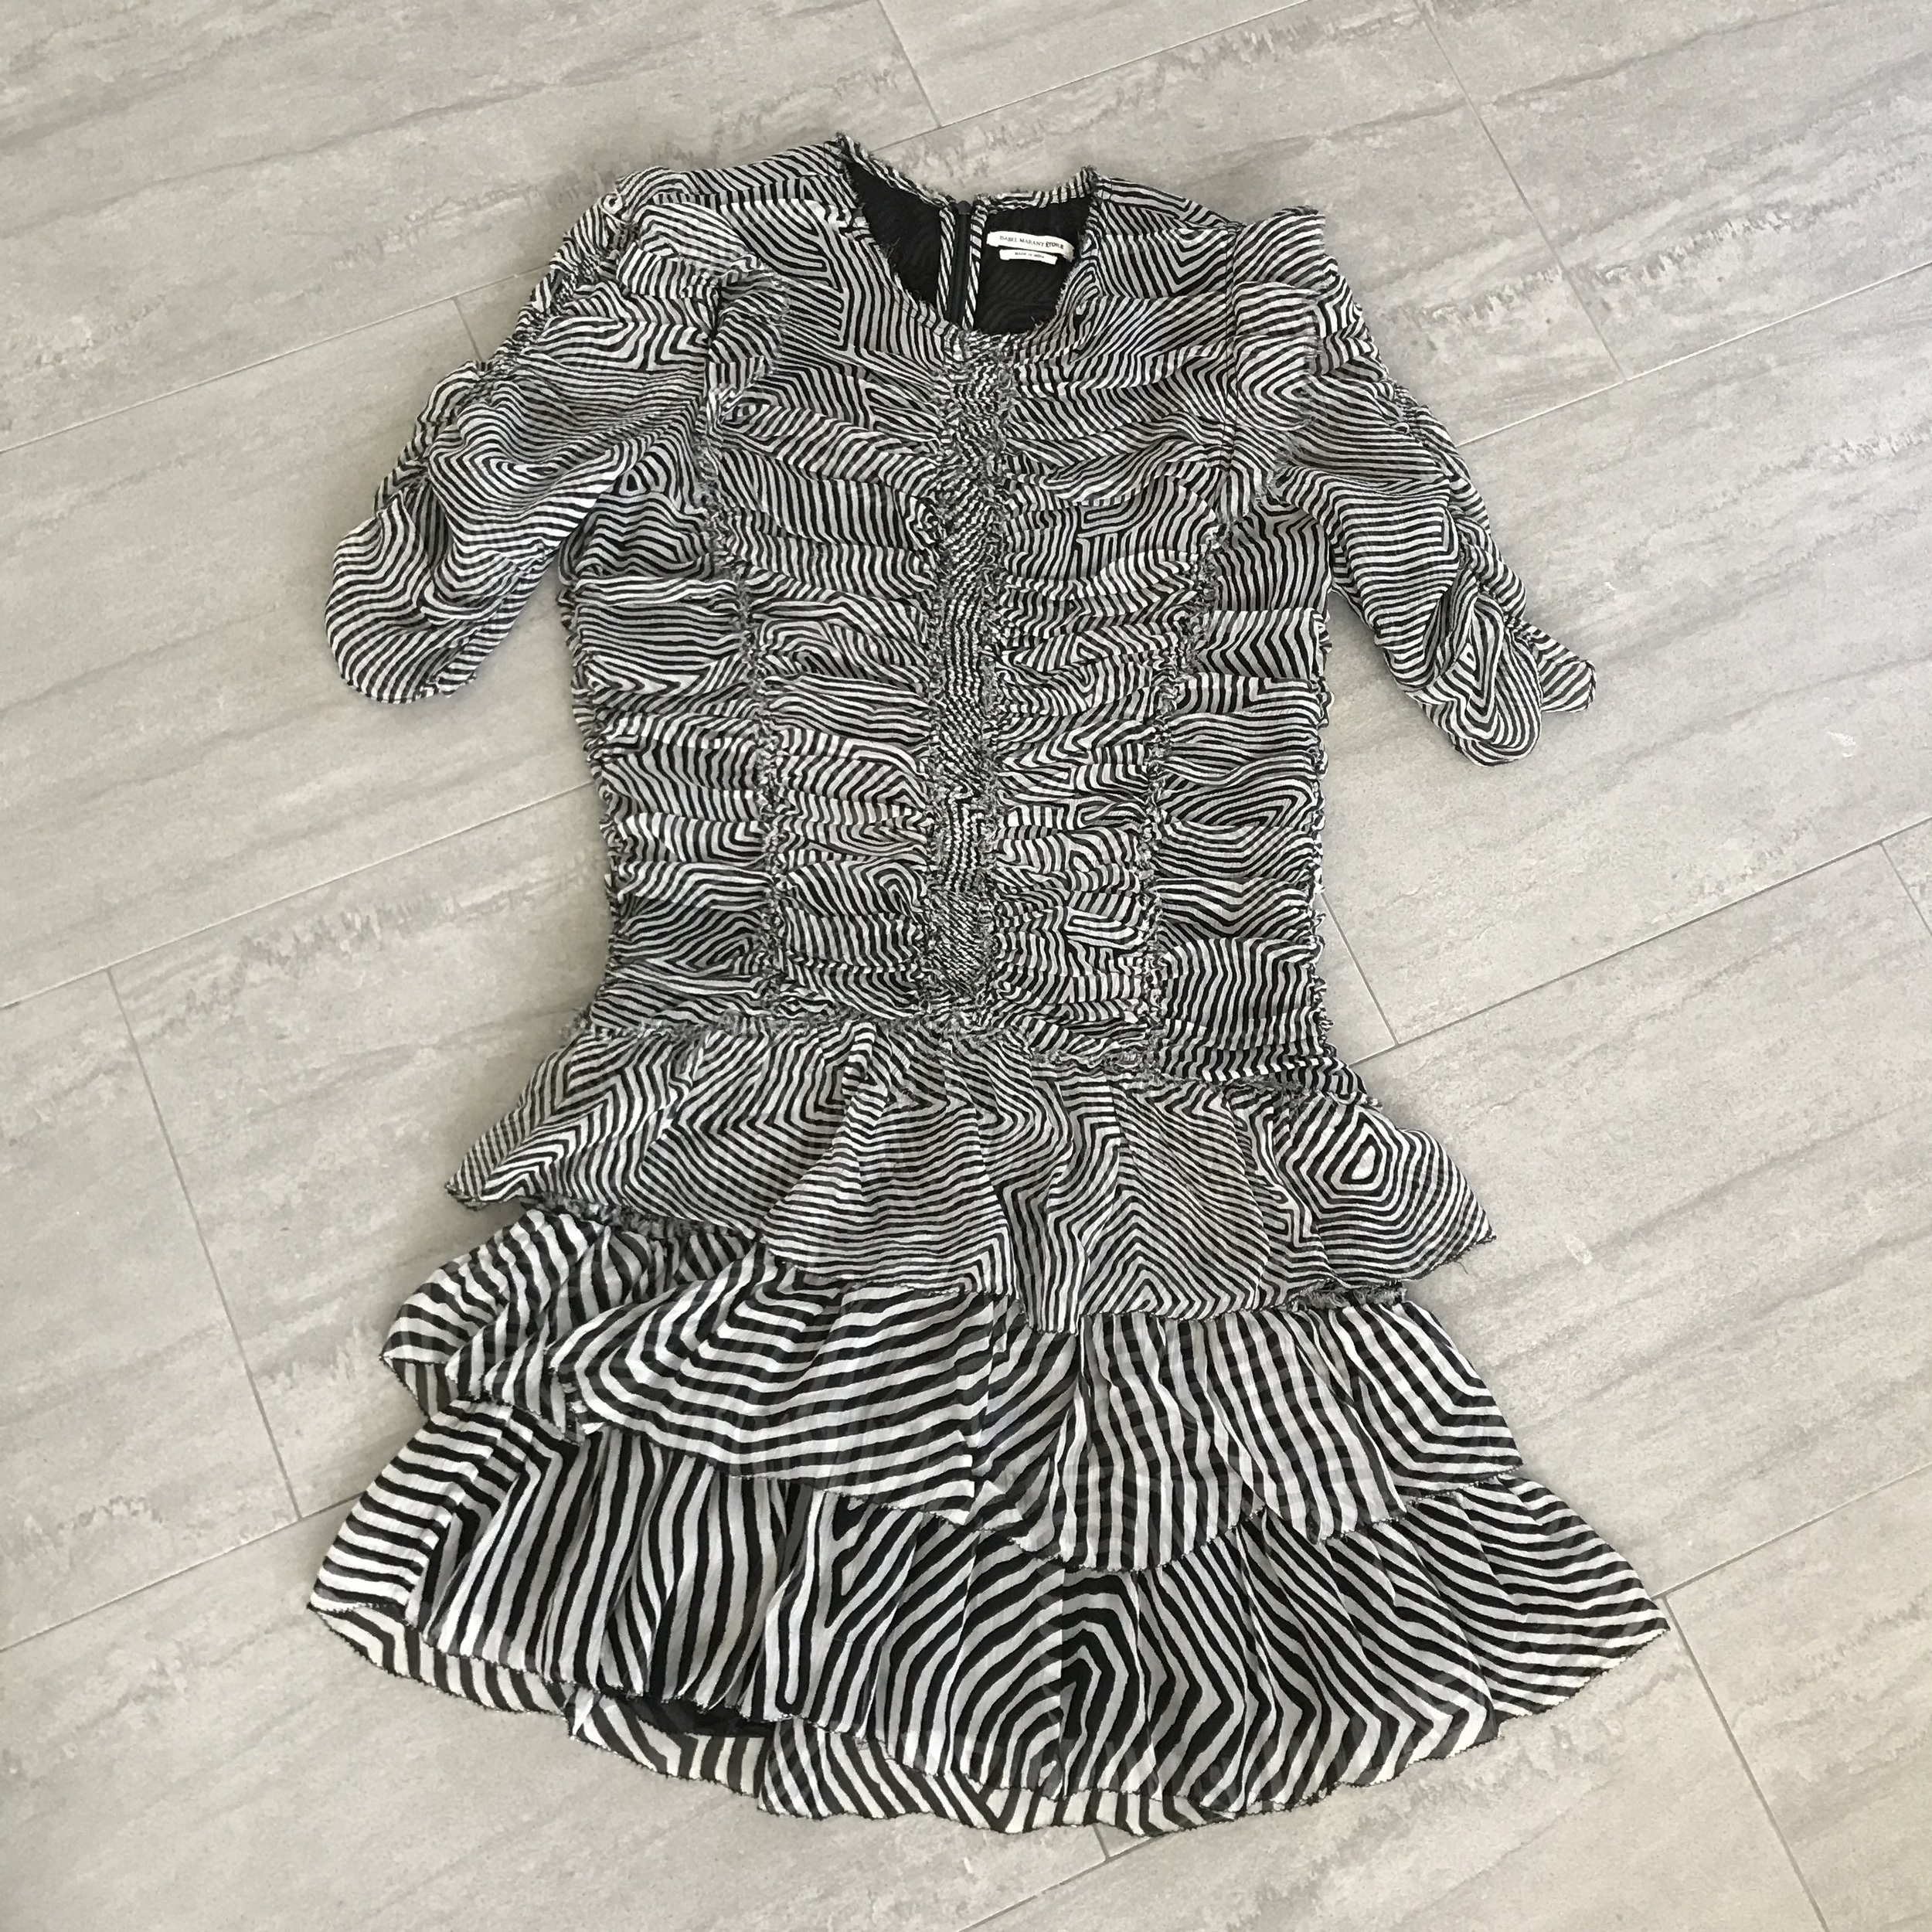 marant dress style advice